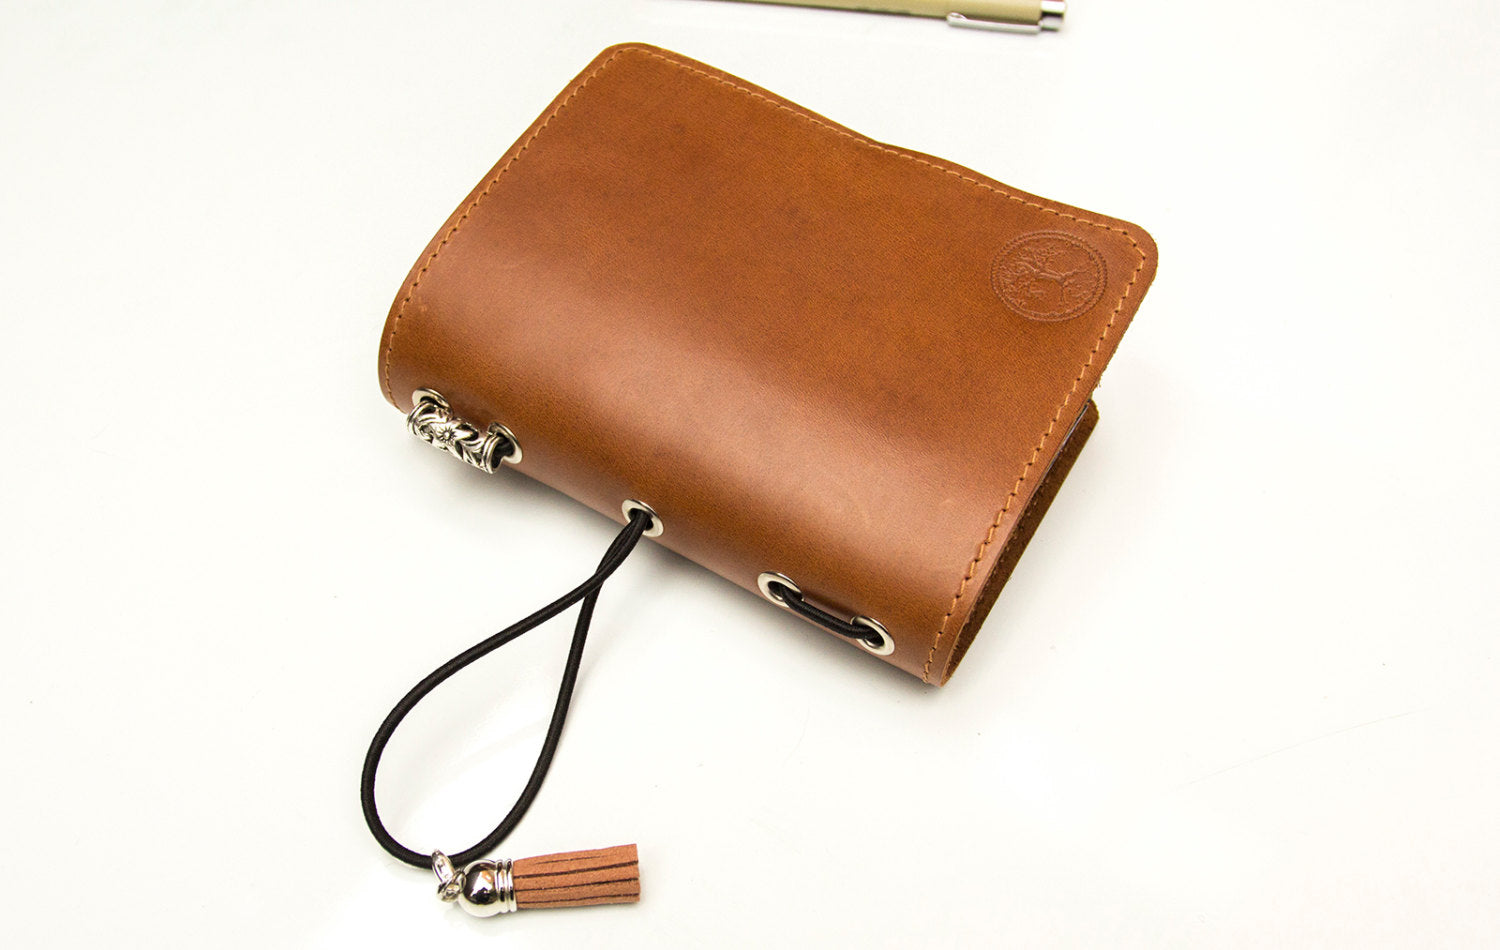 Passport Size Light Brown Leather Travelers Notebook